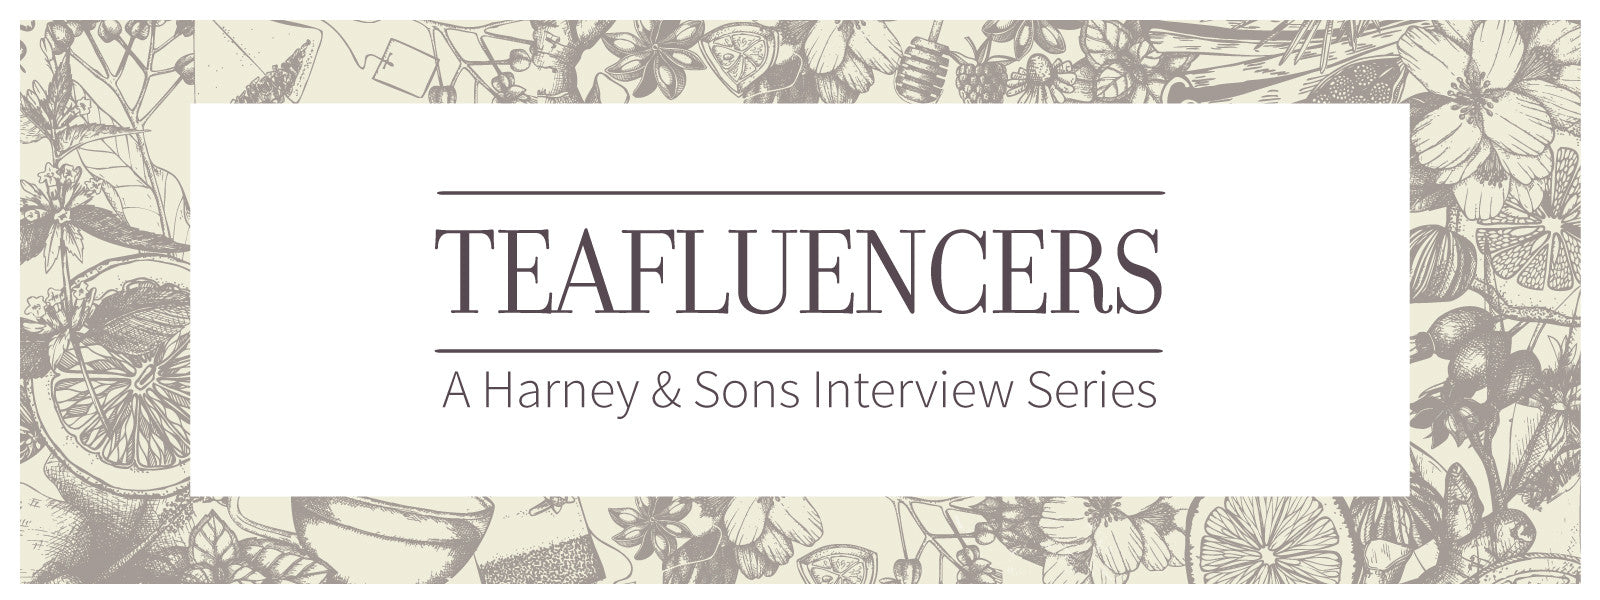 Harney & Sons Teafluencer Interview: Warren Adler